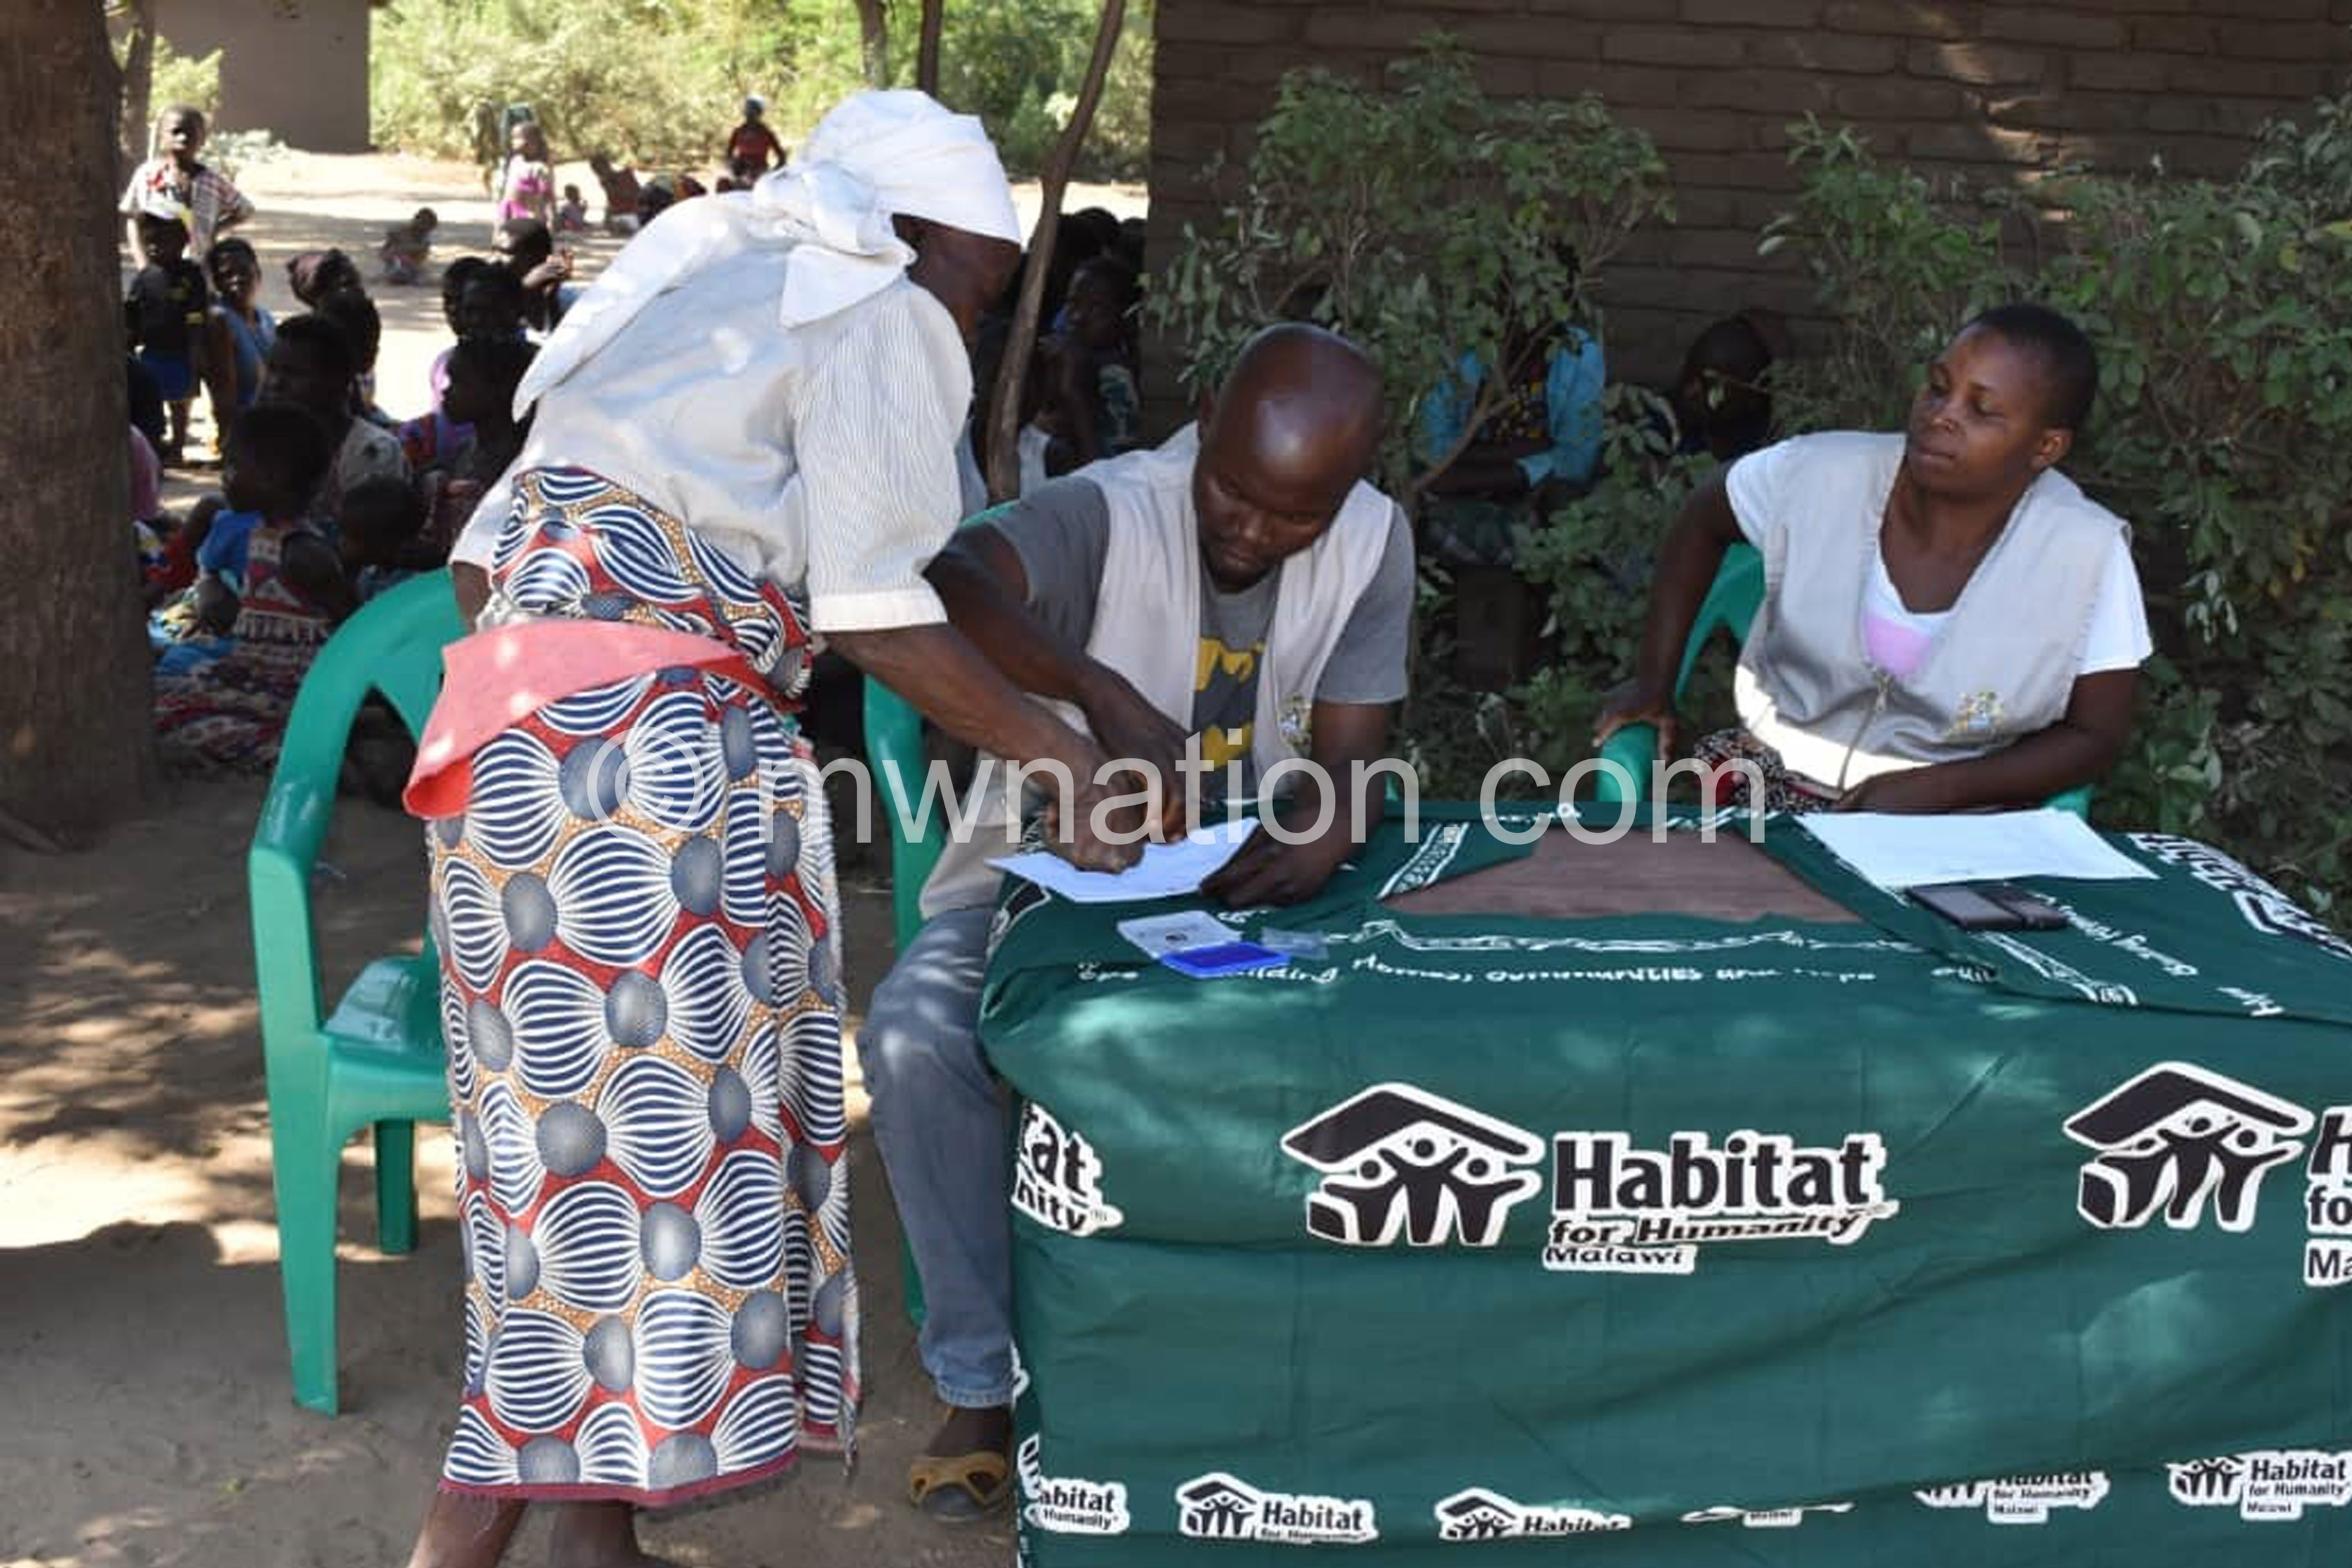 Korean agency helps Habitat build houses in Chikwawa